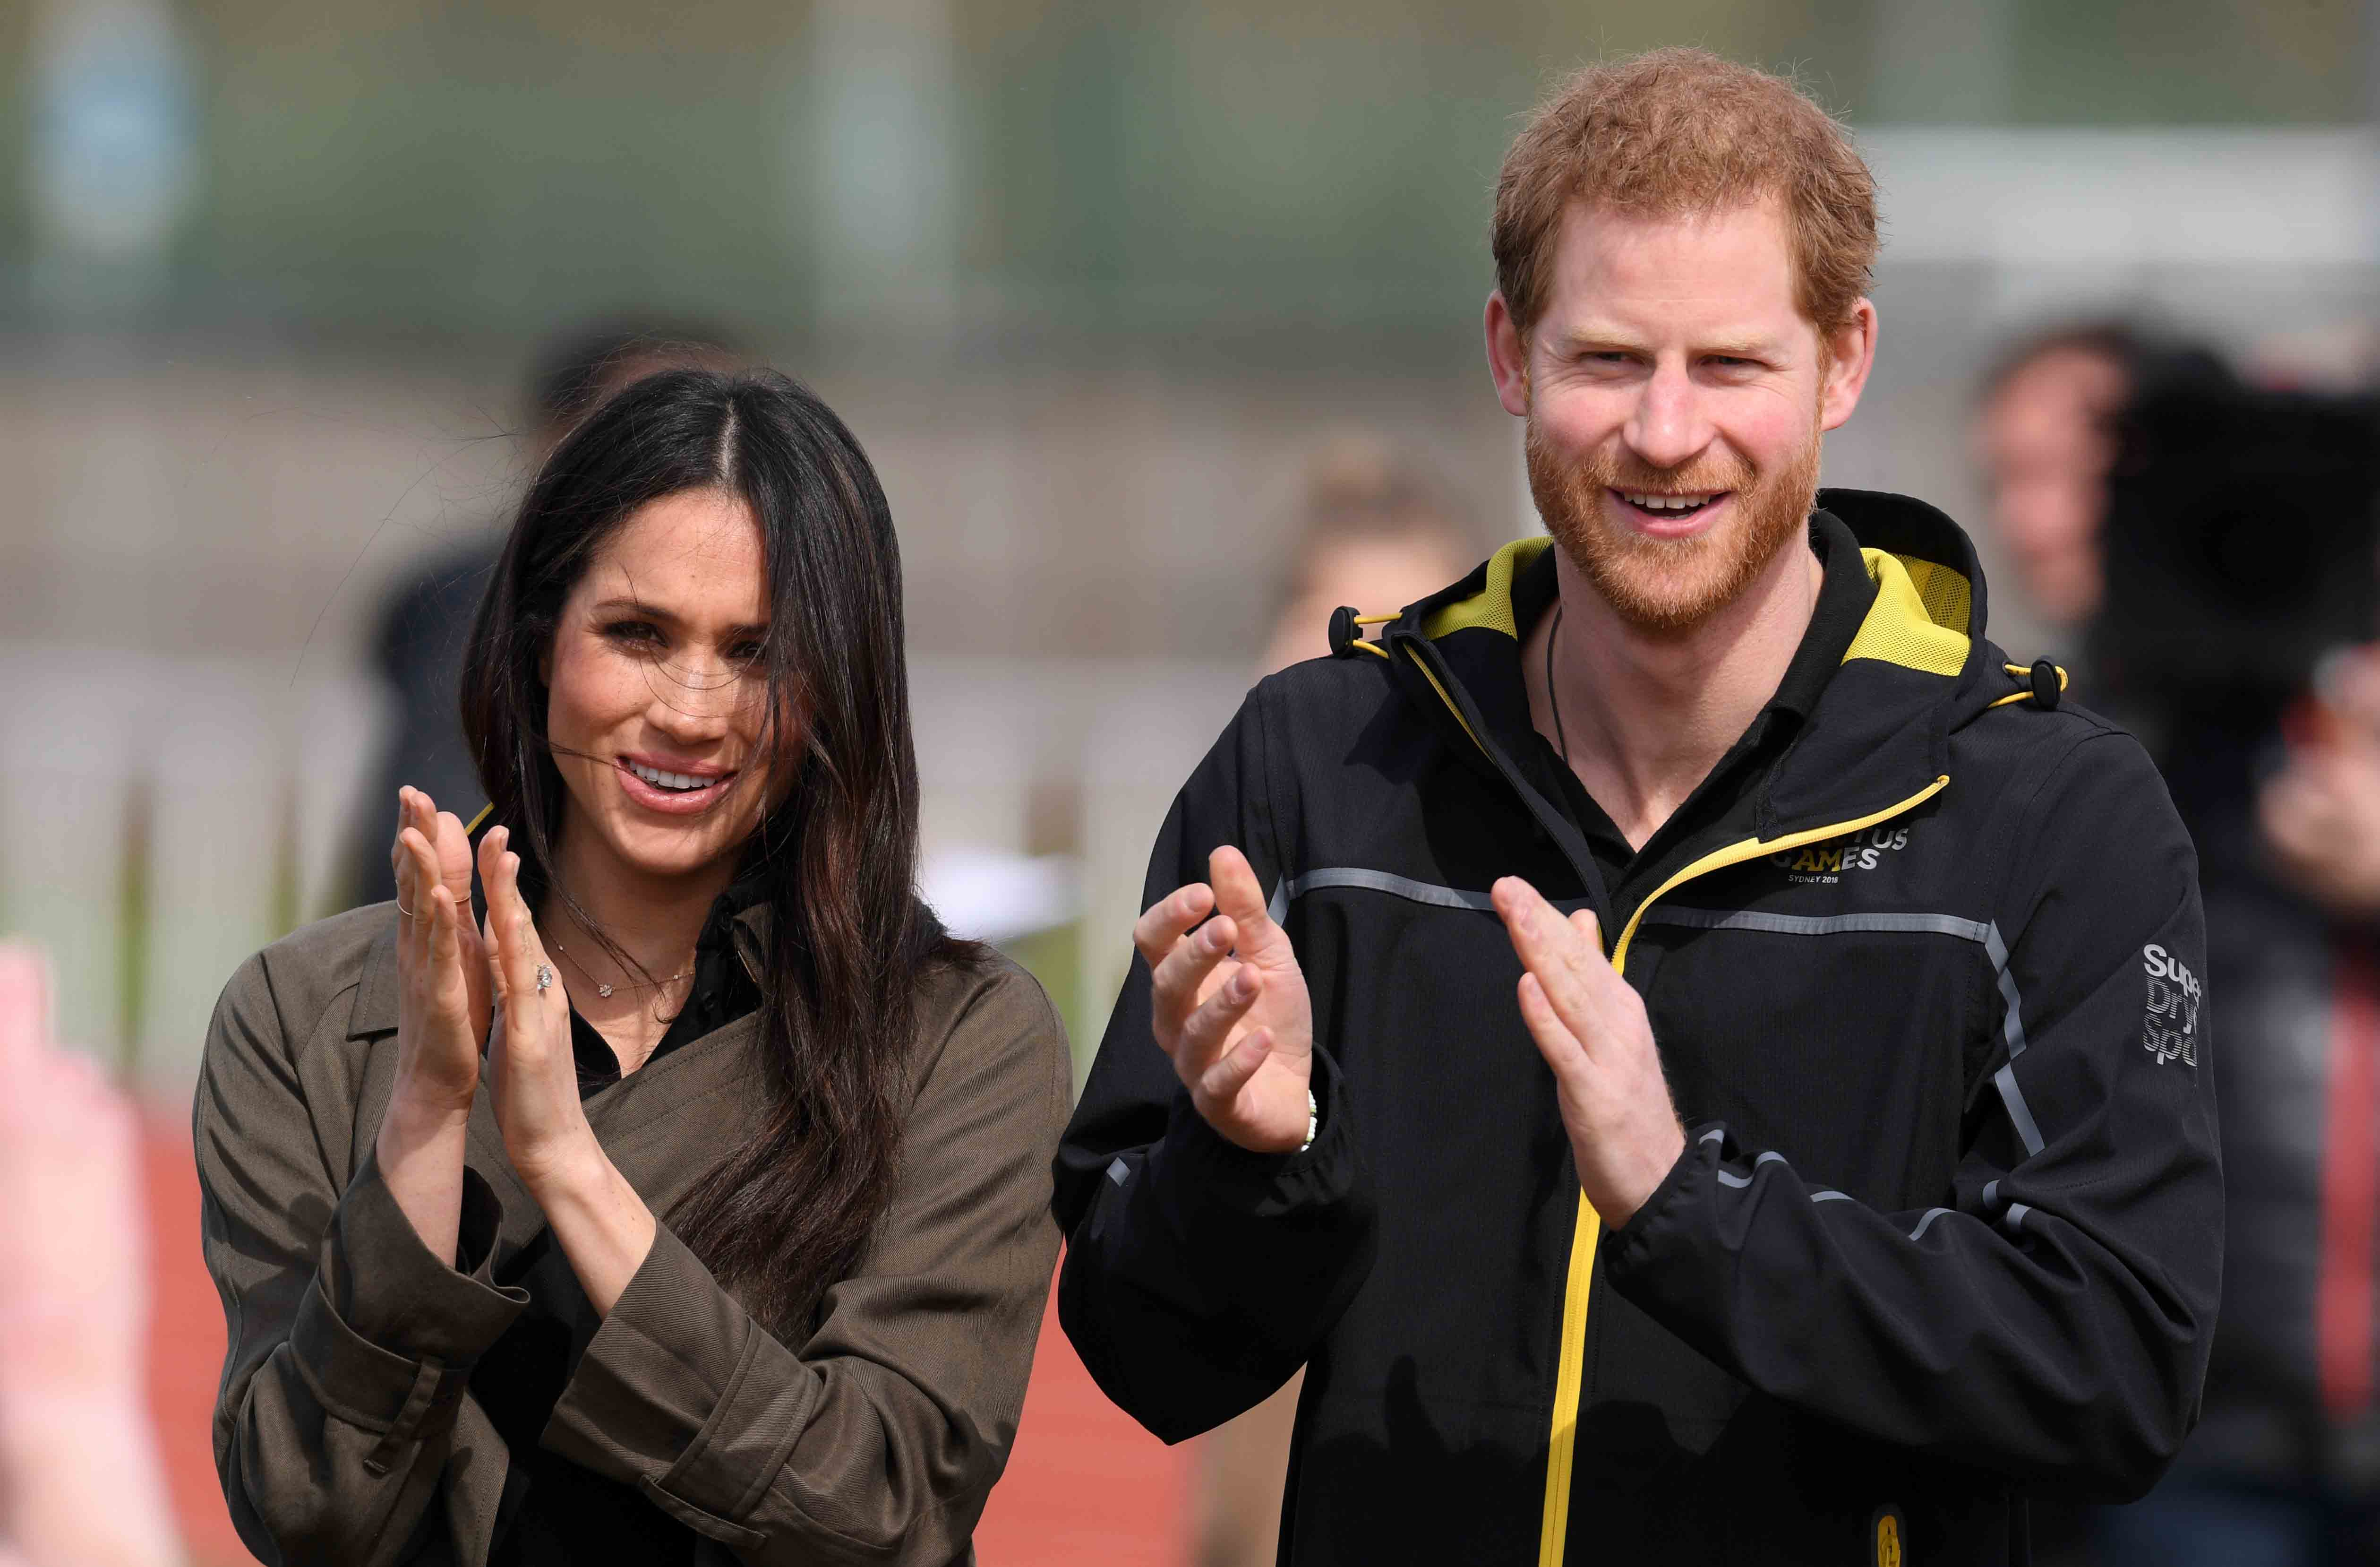 Prince Harry loses half a stone on 'health kick' inspired by Meghan Markle